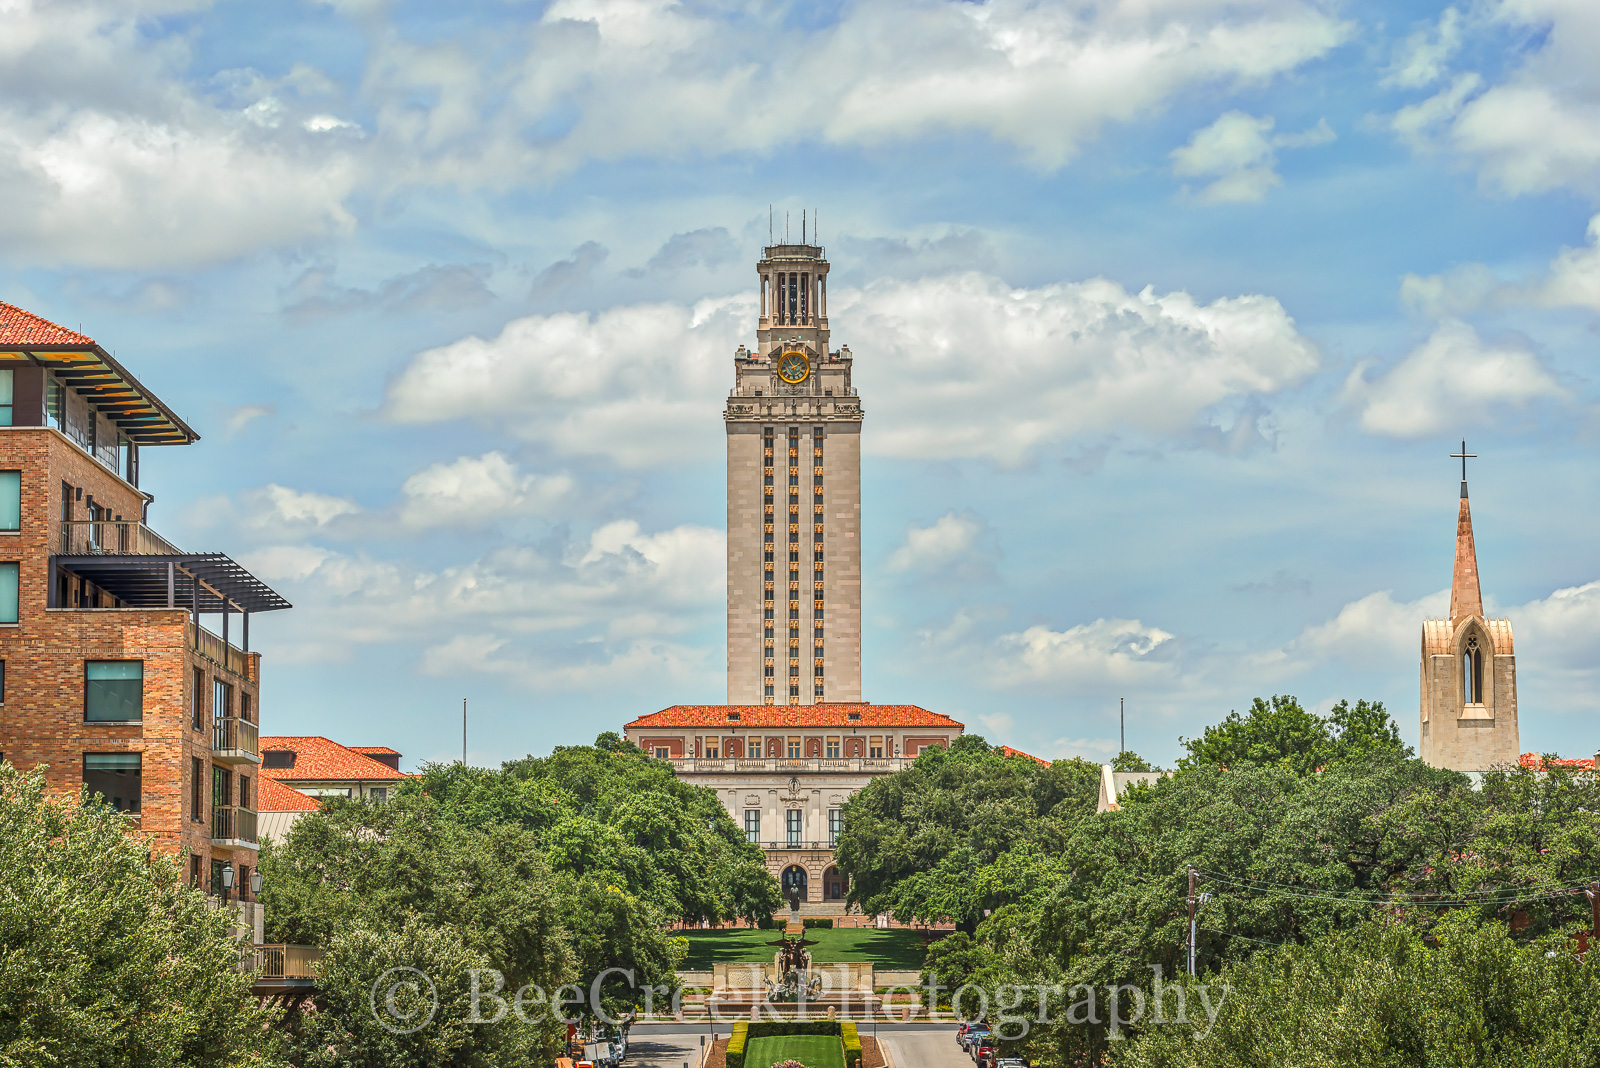 UT, tower, Austin, Texas, university, city, cities, downtown, cityscape, cityscapes, learning, schools,images of austin, photo